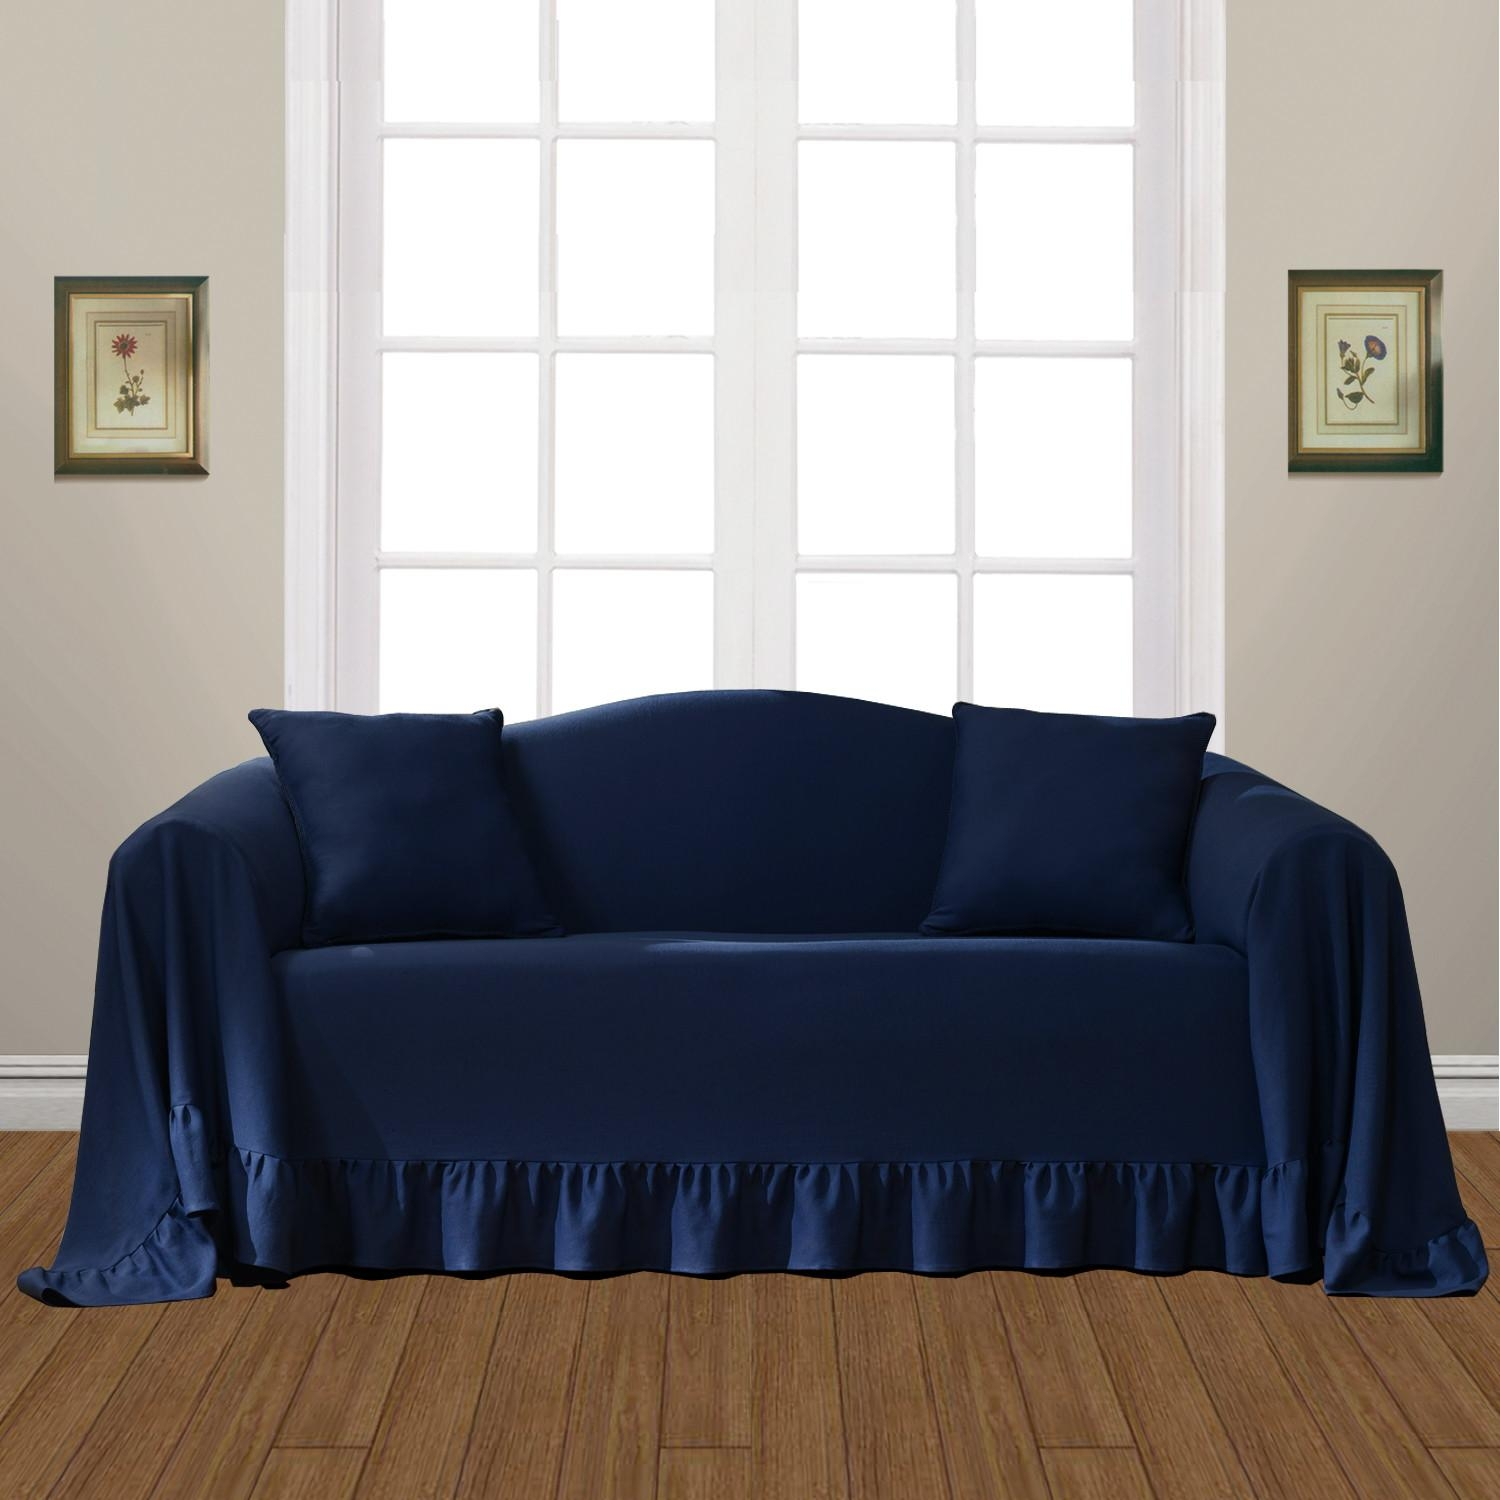 Furniture: Update Your Cozy Living Room With Cheap Sofa Covers Within Black Sofa Slipcovers (Image 14 of 20)